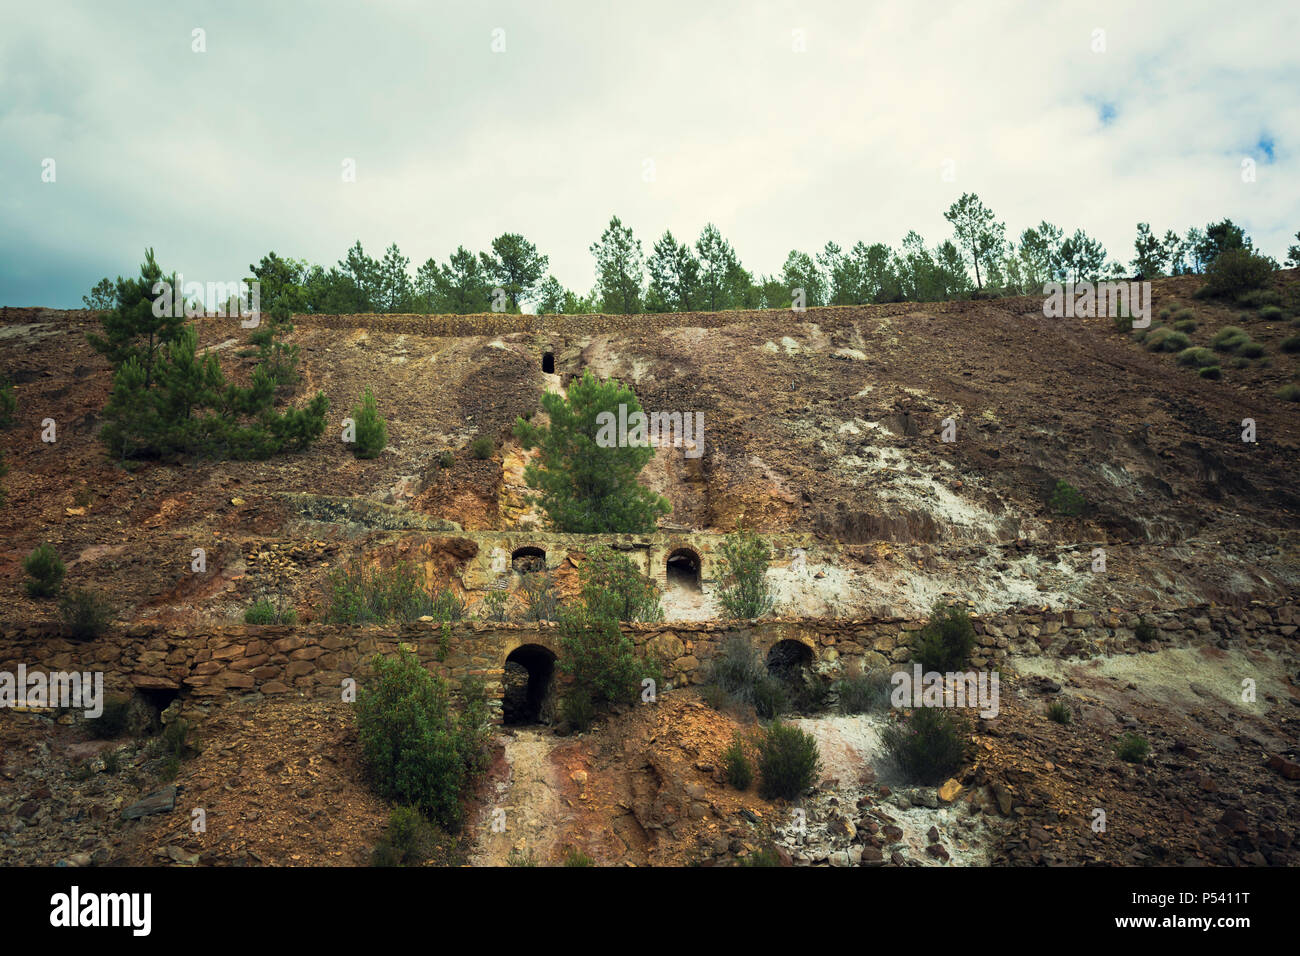 Landscape of old stone walls and arches in old copper mine in Zaranda, Spain - Stock Image